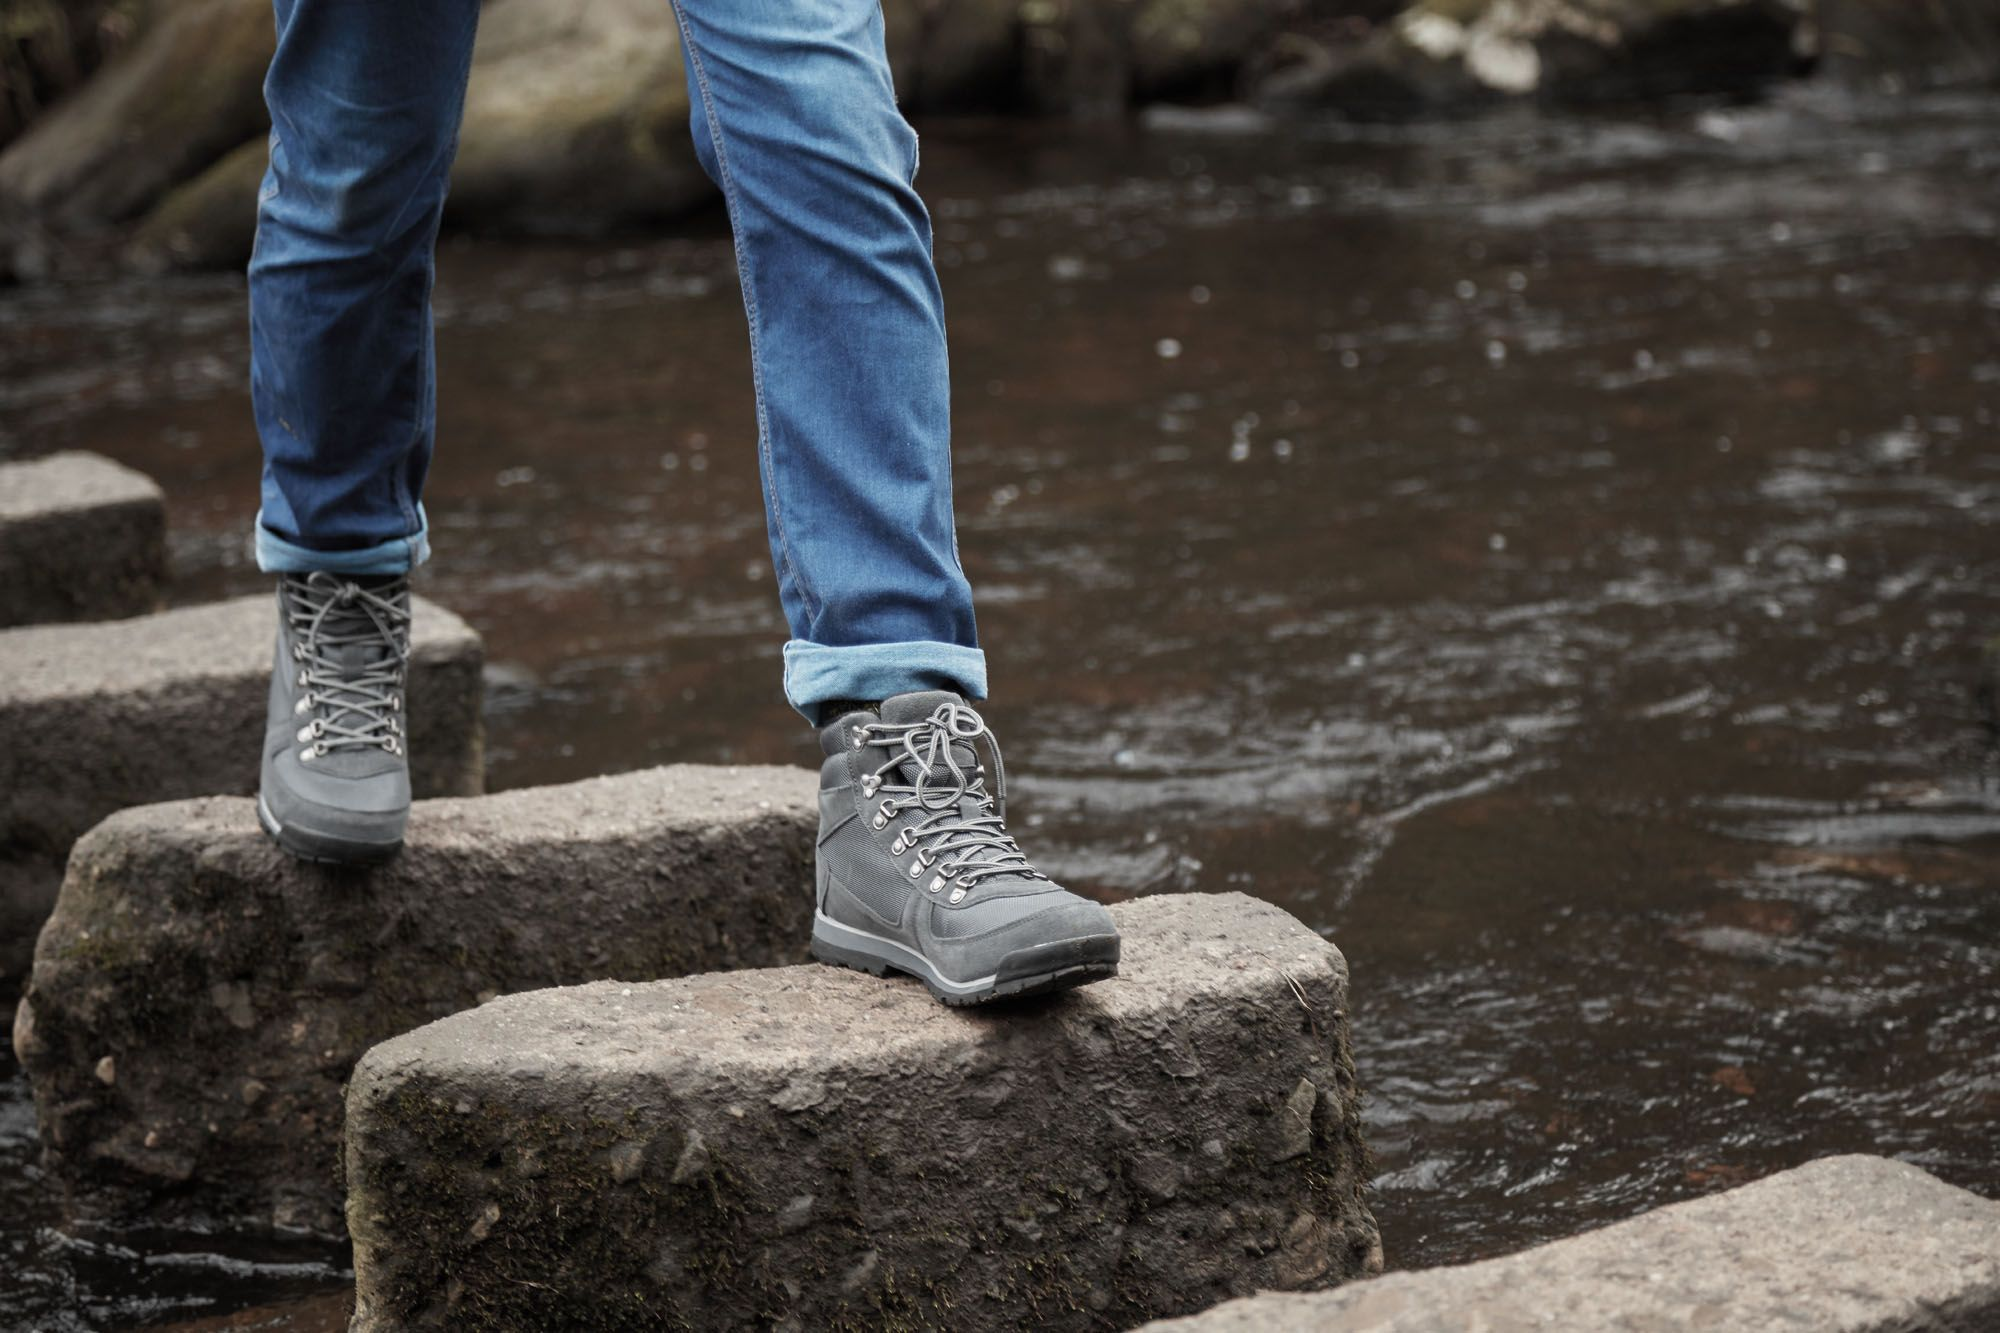 4708a712f8a Penyghent Unisex Waterproof Boots | BACK TO OUR BOOTS | Waterproof ...